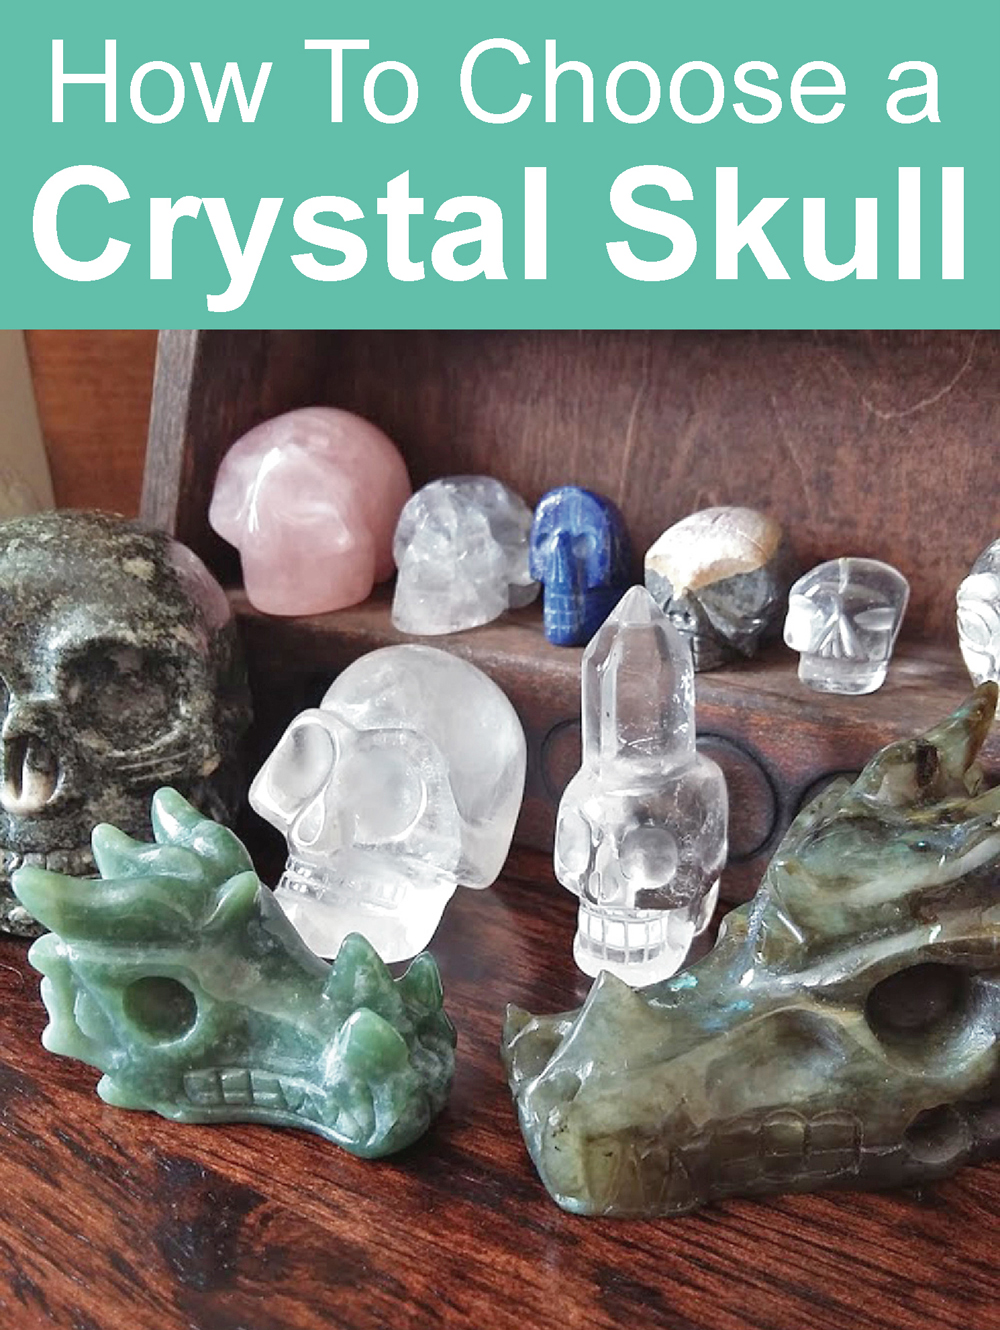 How To Choose A Crystal Skull: What your crystal skull means